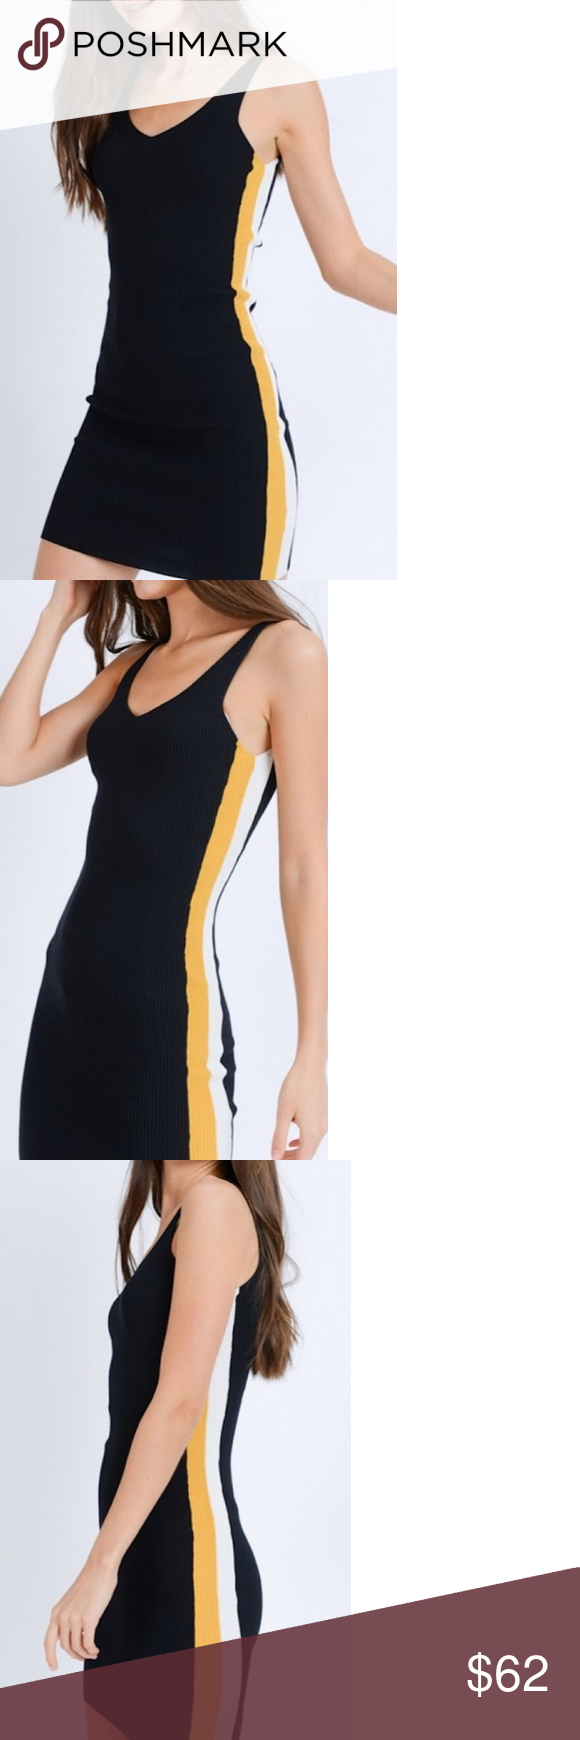 13++ Bodycon dress with stripes down the side trends